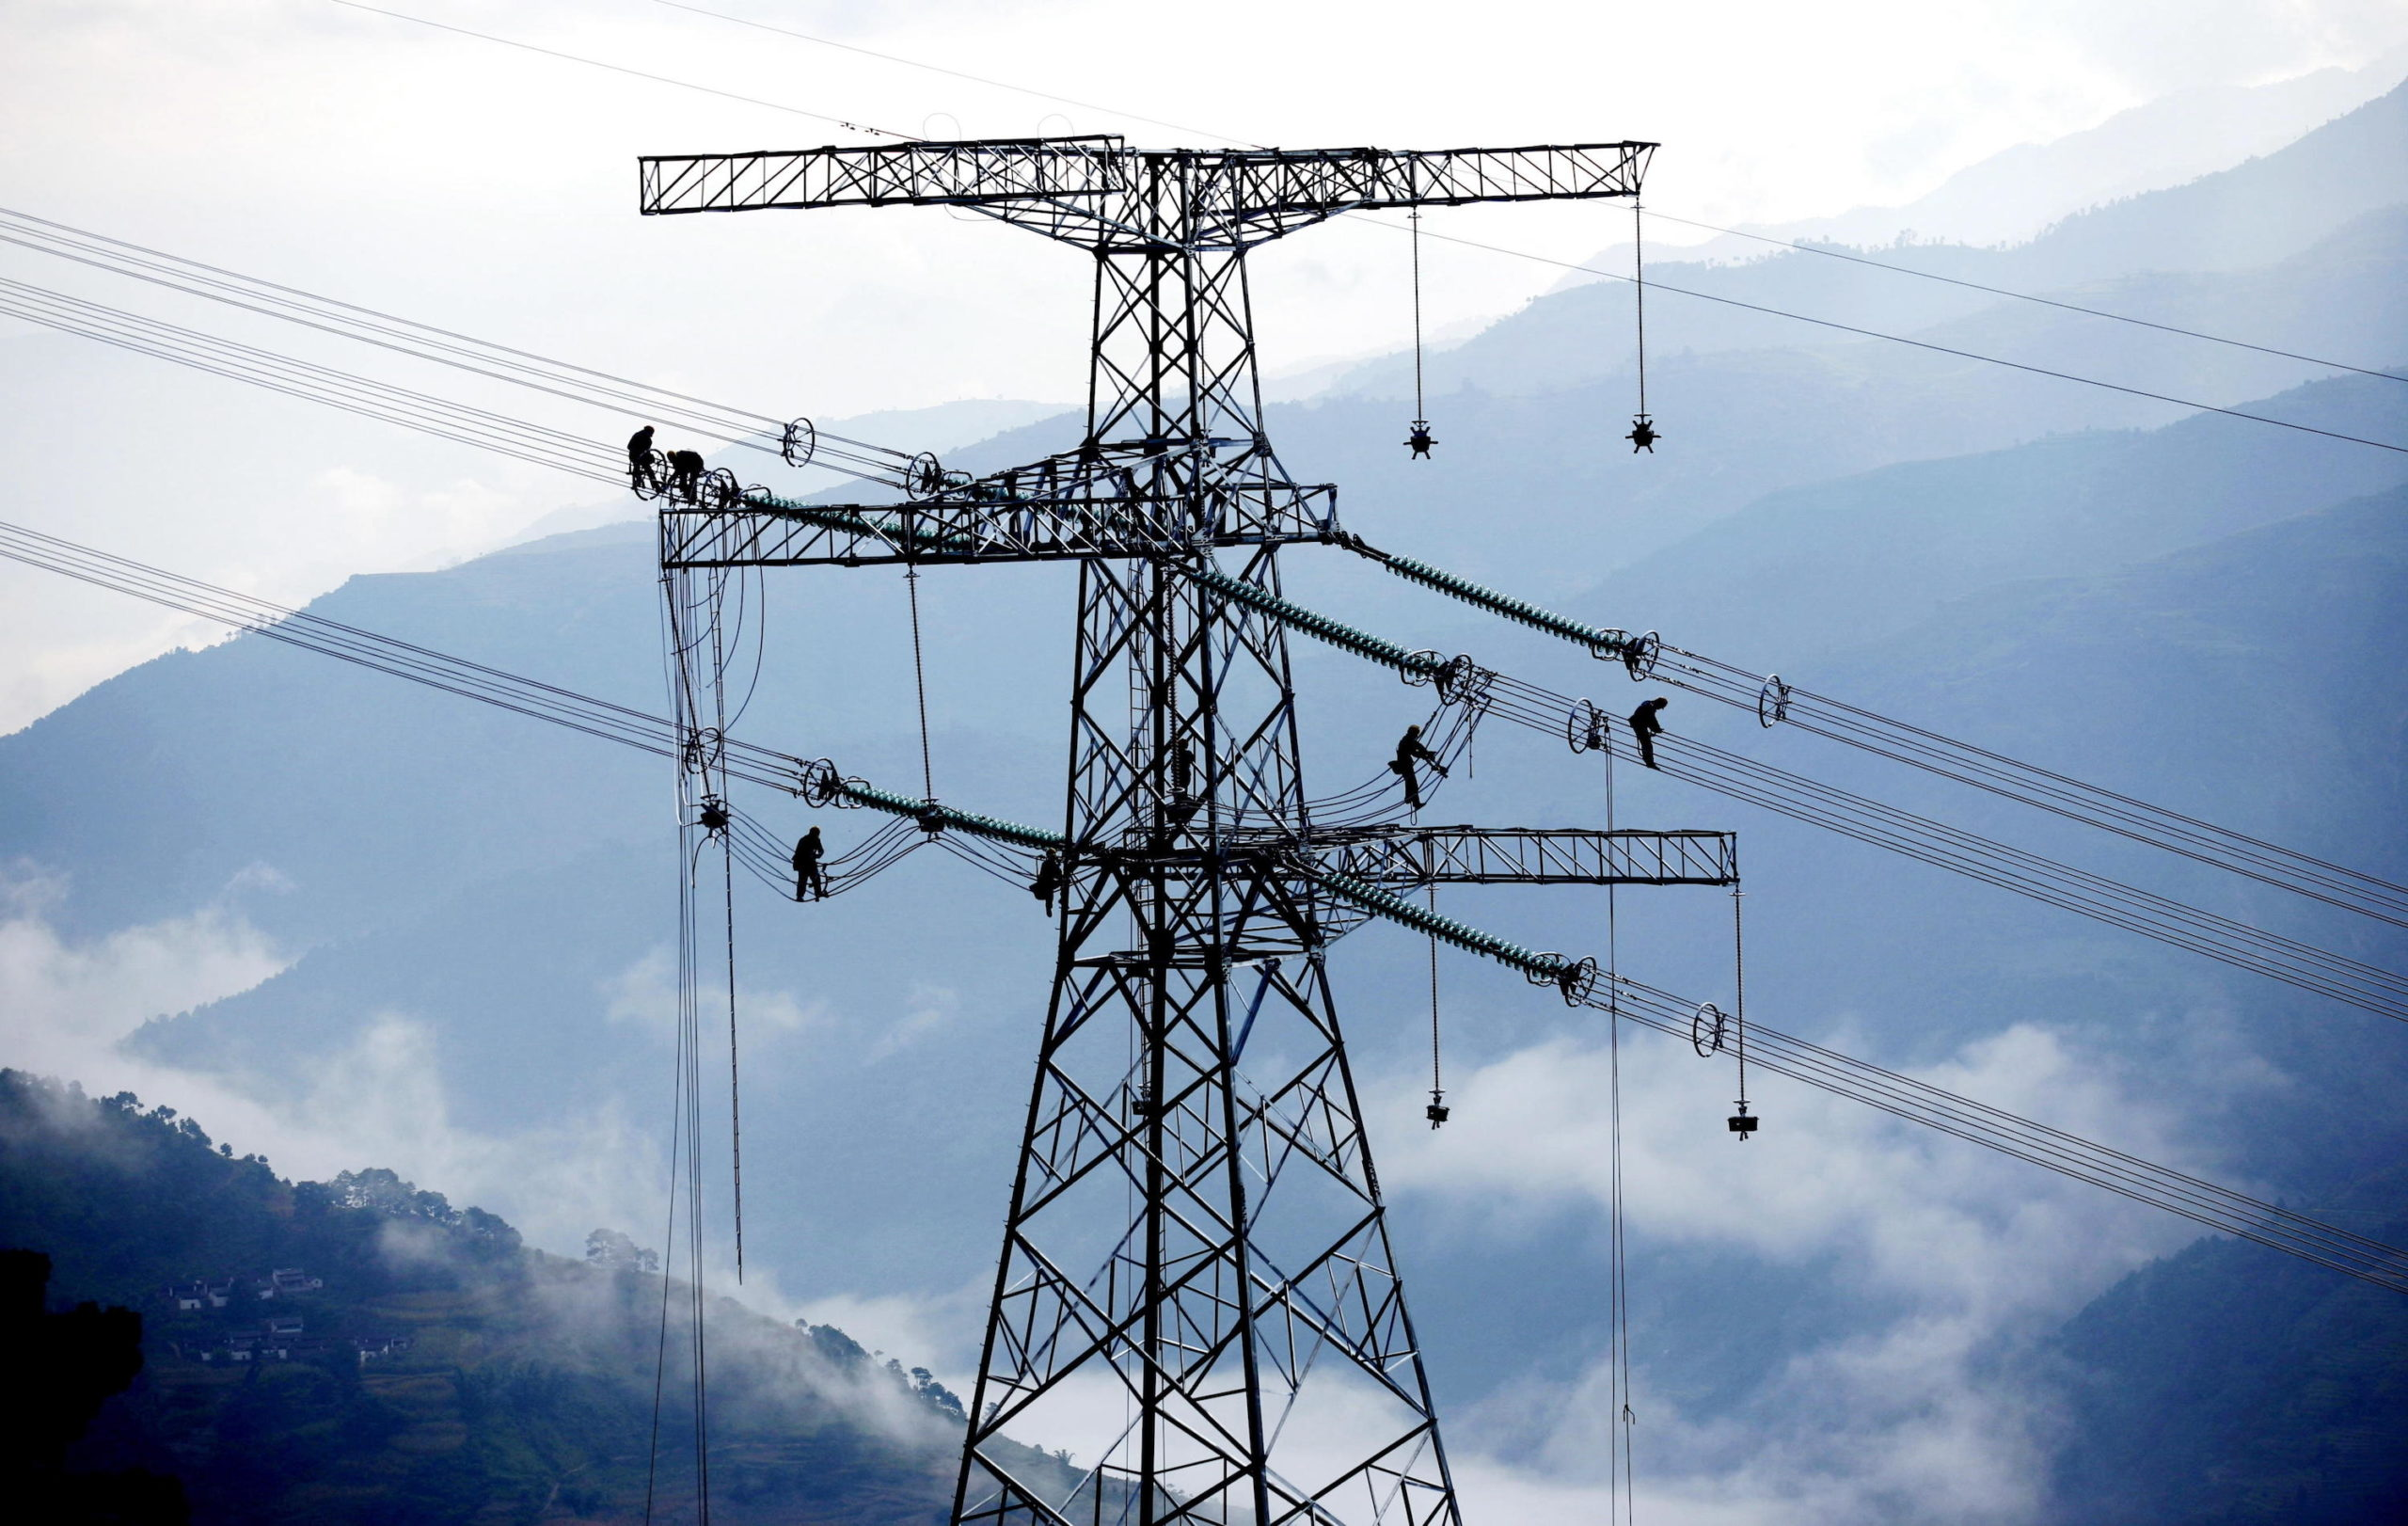 Electricians install power lines near the Xiaowan hydropower station in southwest China's Yunnan province, where coal has played a supporting role in the power mix for years (Image: Alamy)